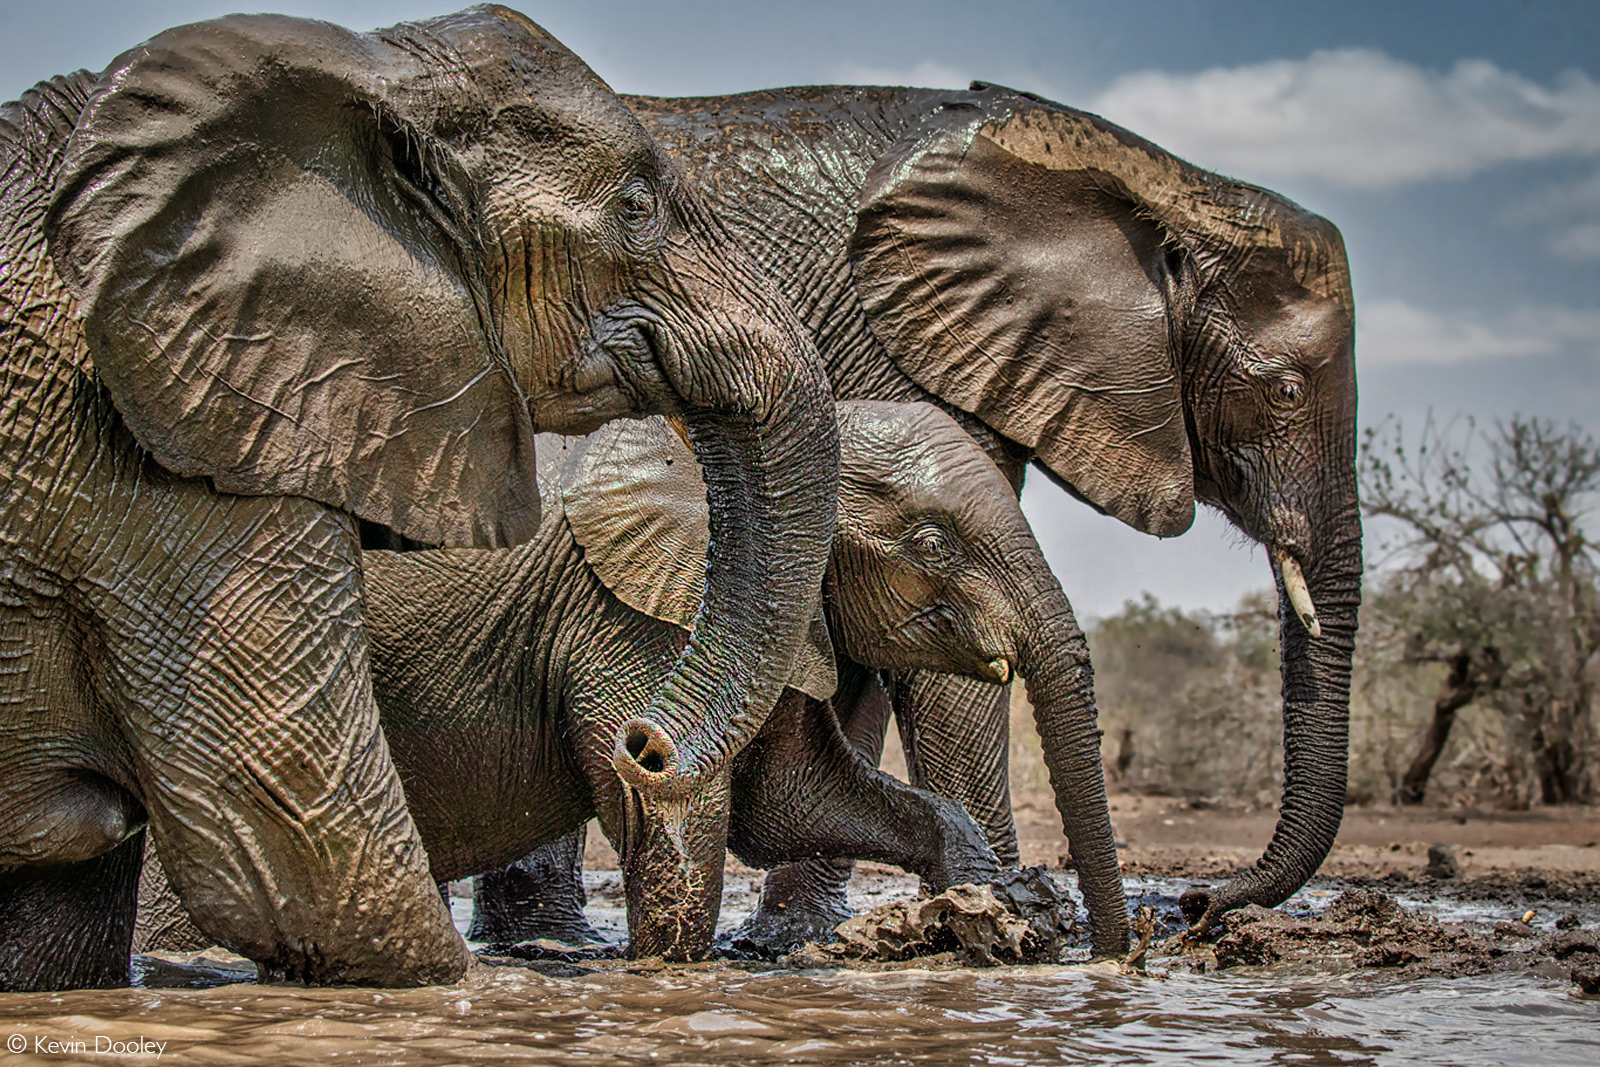 An elephant family herd at a waterhole. Mashatu Game Reserve, Botswana © Kevin Dooley